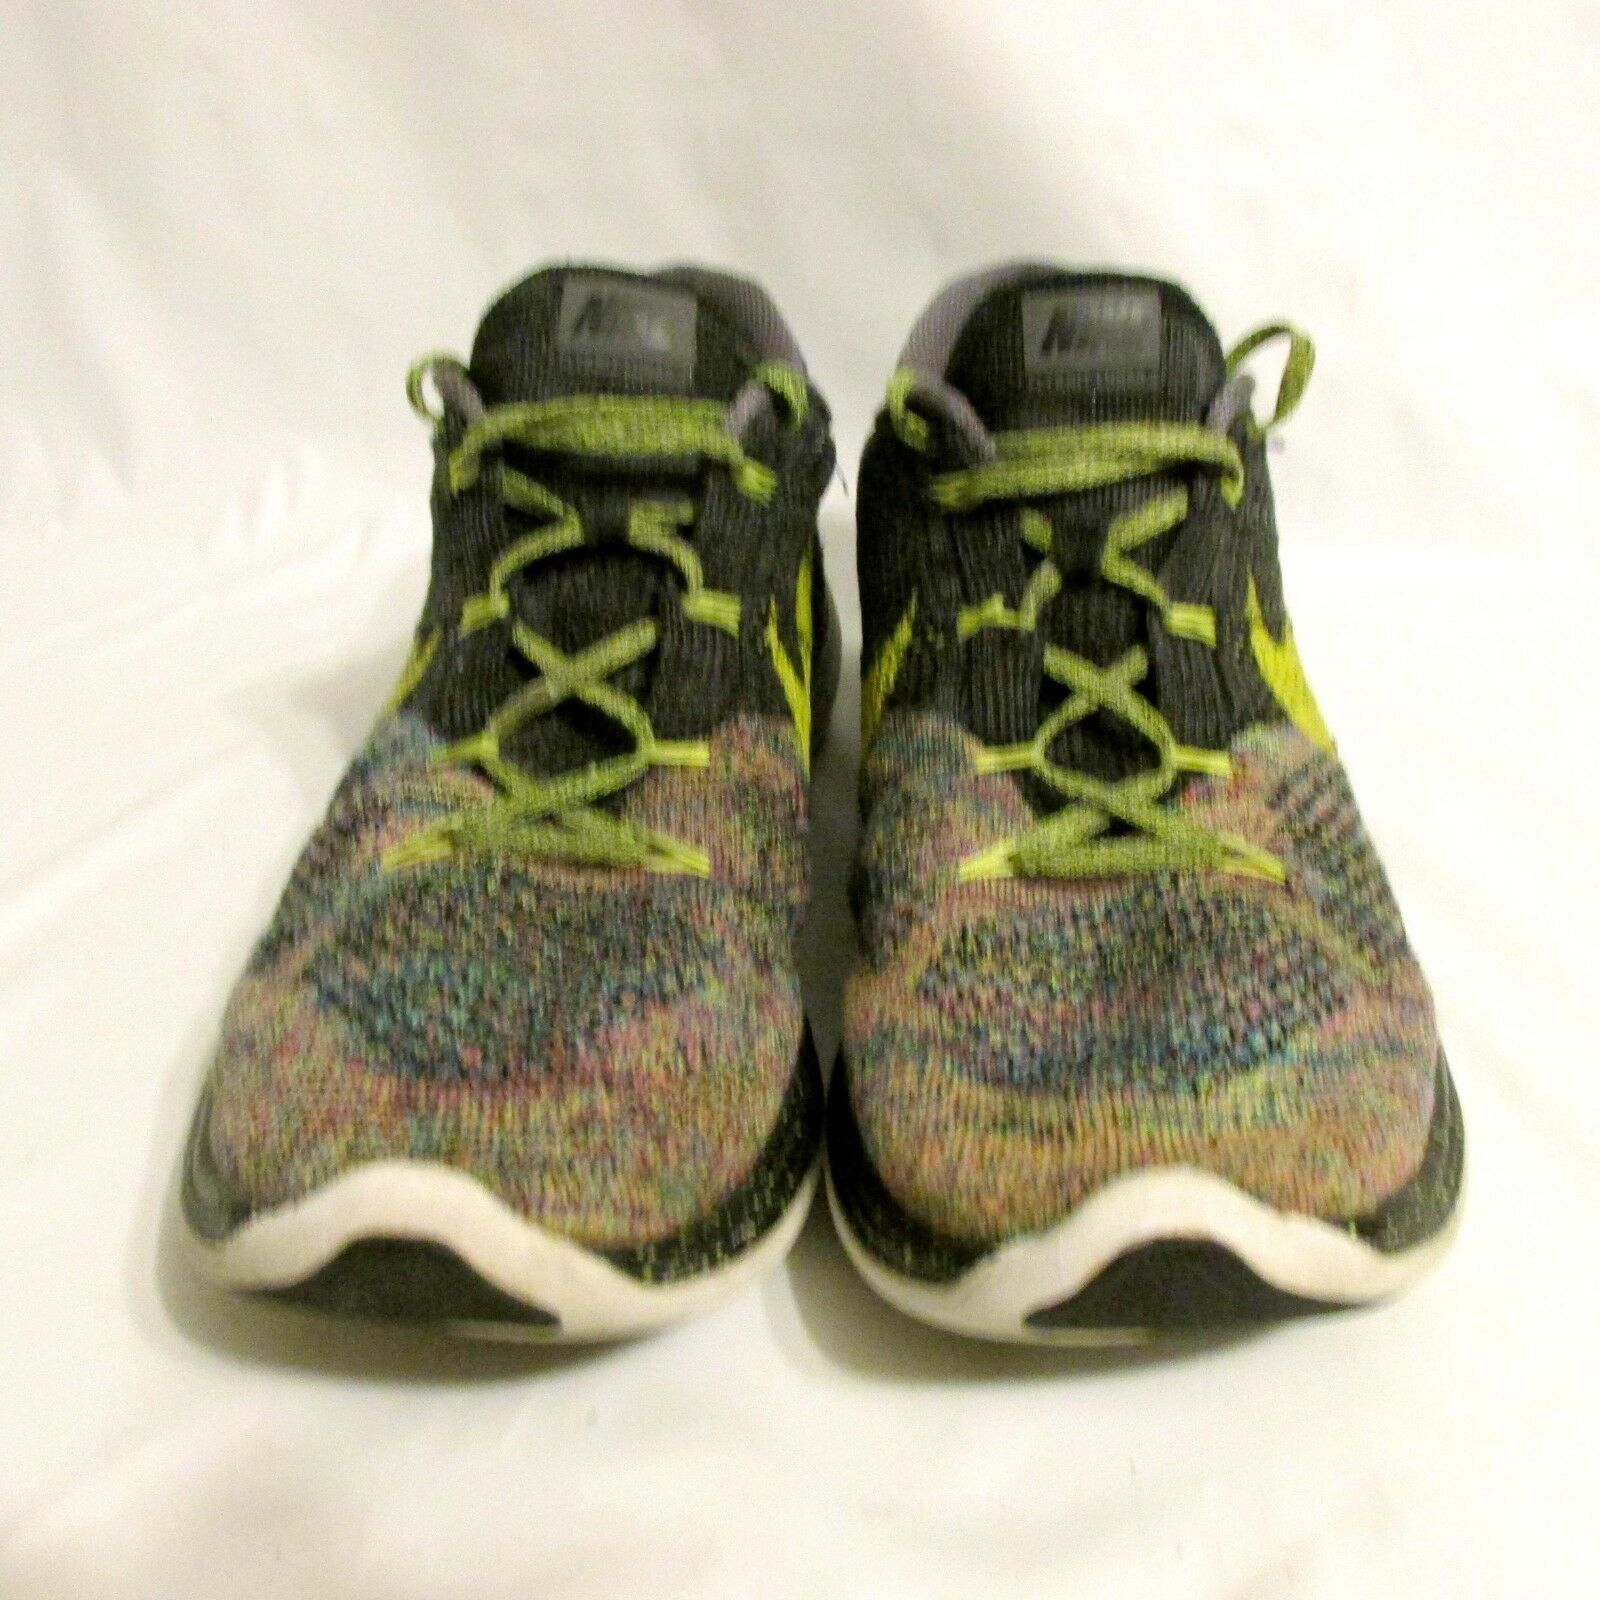 NIKE MENS FLYKNIT LUNAR 3 MULTI-COLOR RUNNING SHOES 718675 046 12.5